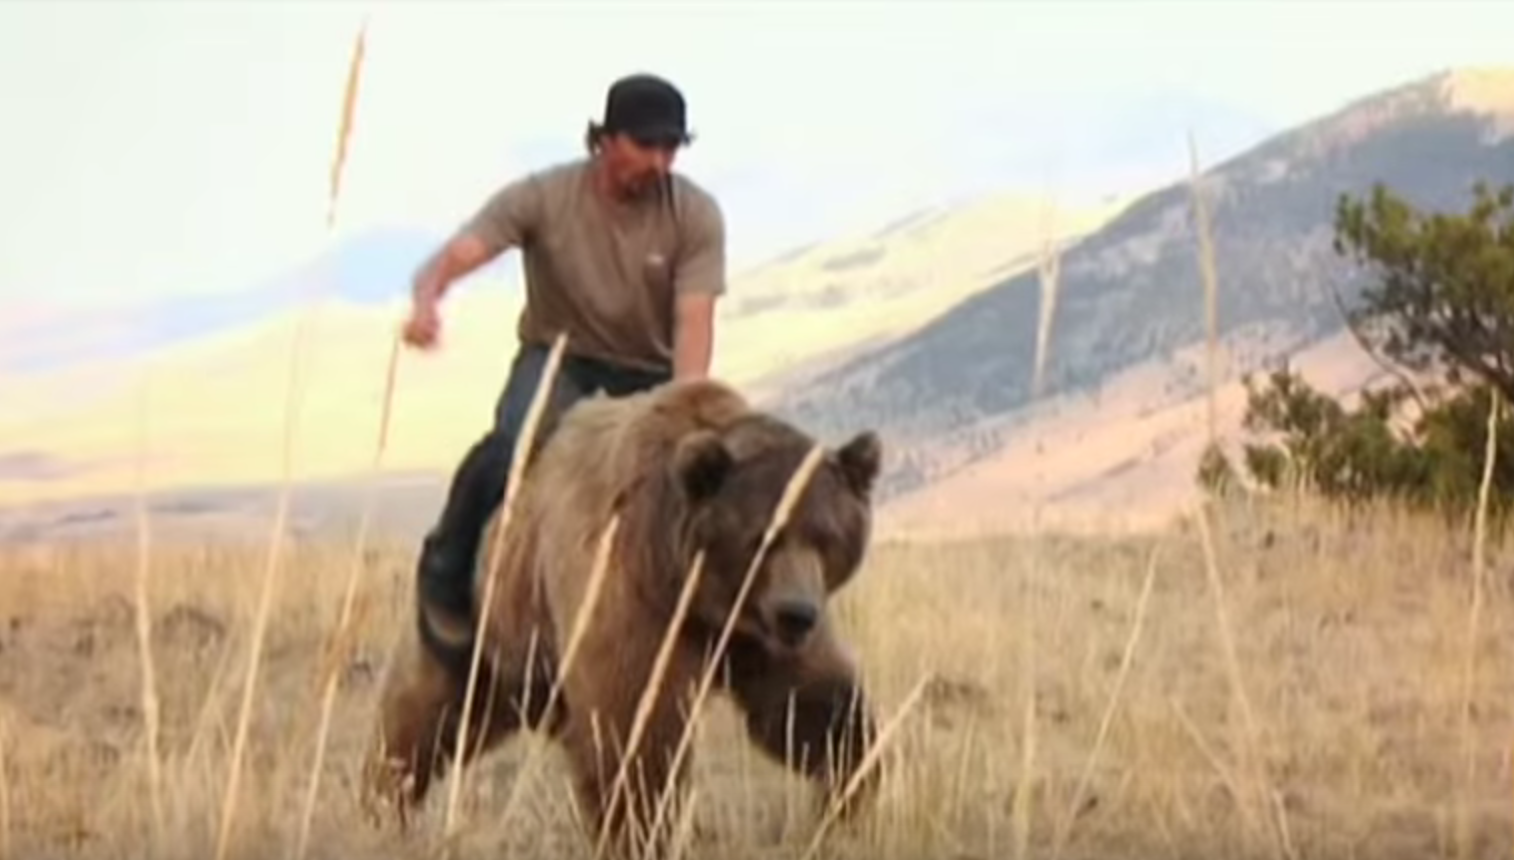 VIDEO: This Man Walks AND RIDES A 900 Lb. Grizzly Bear Through The Forests Of Montana